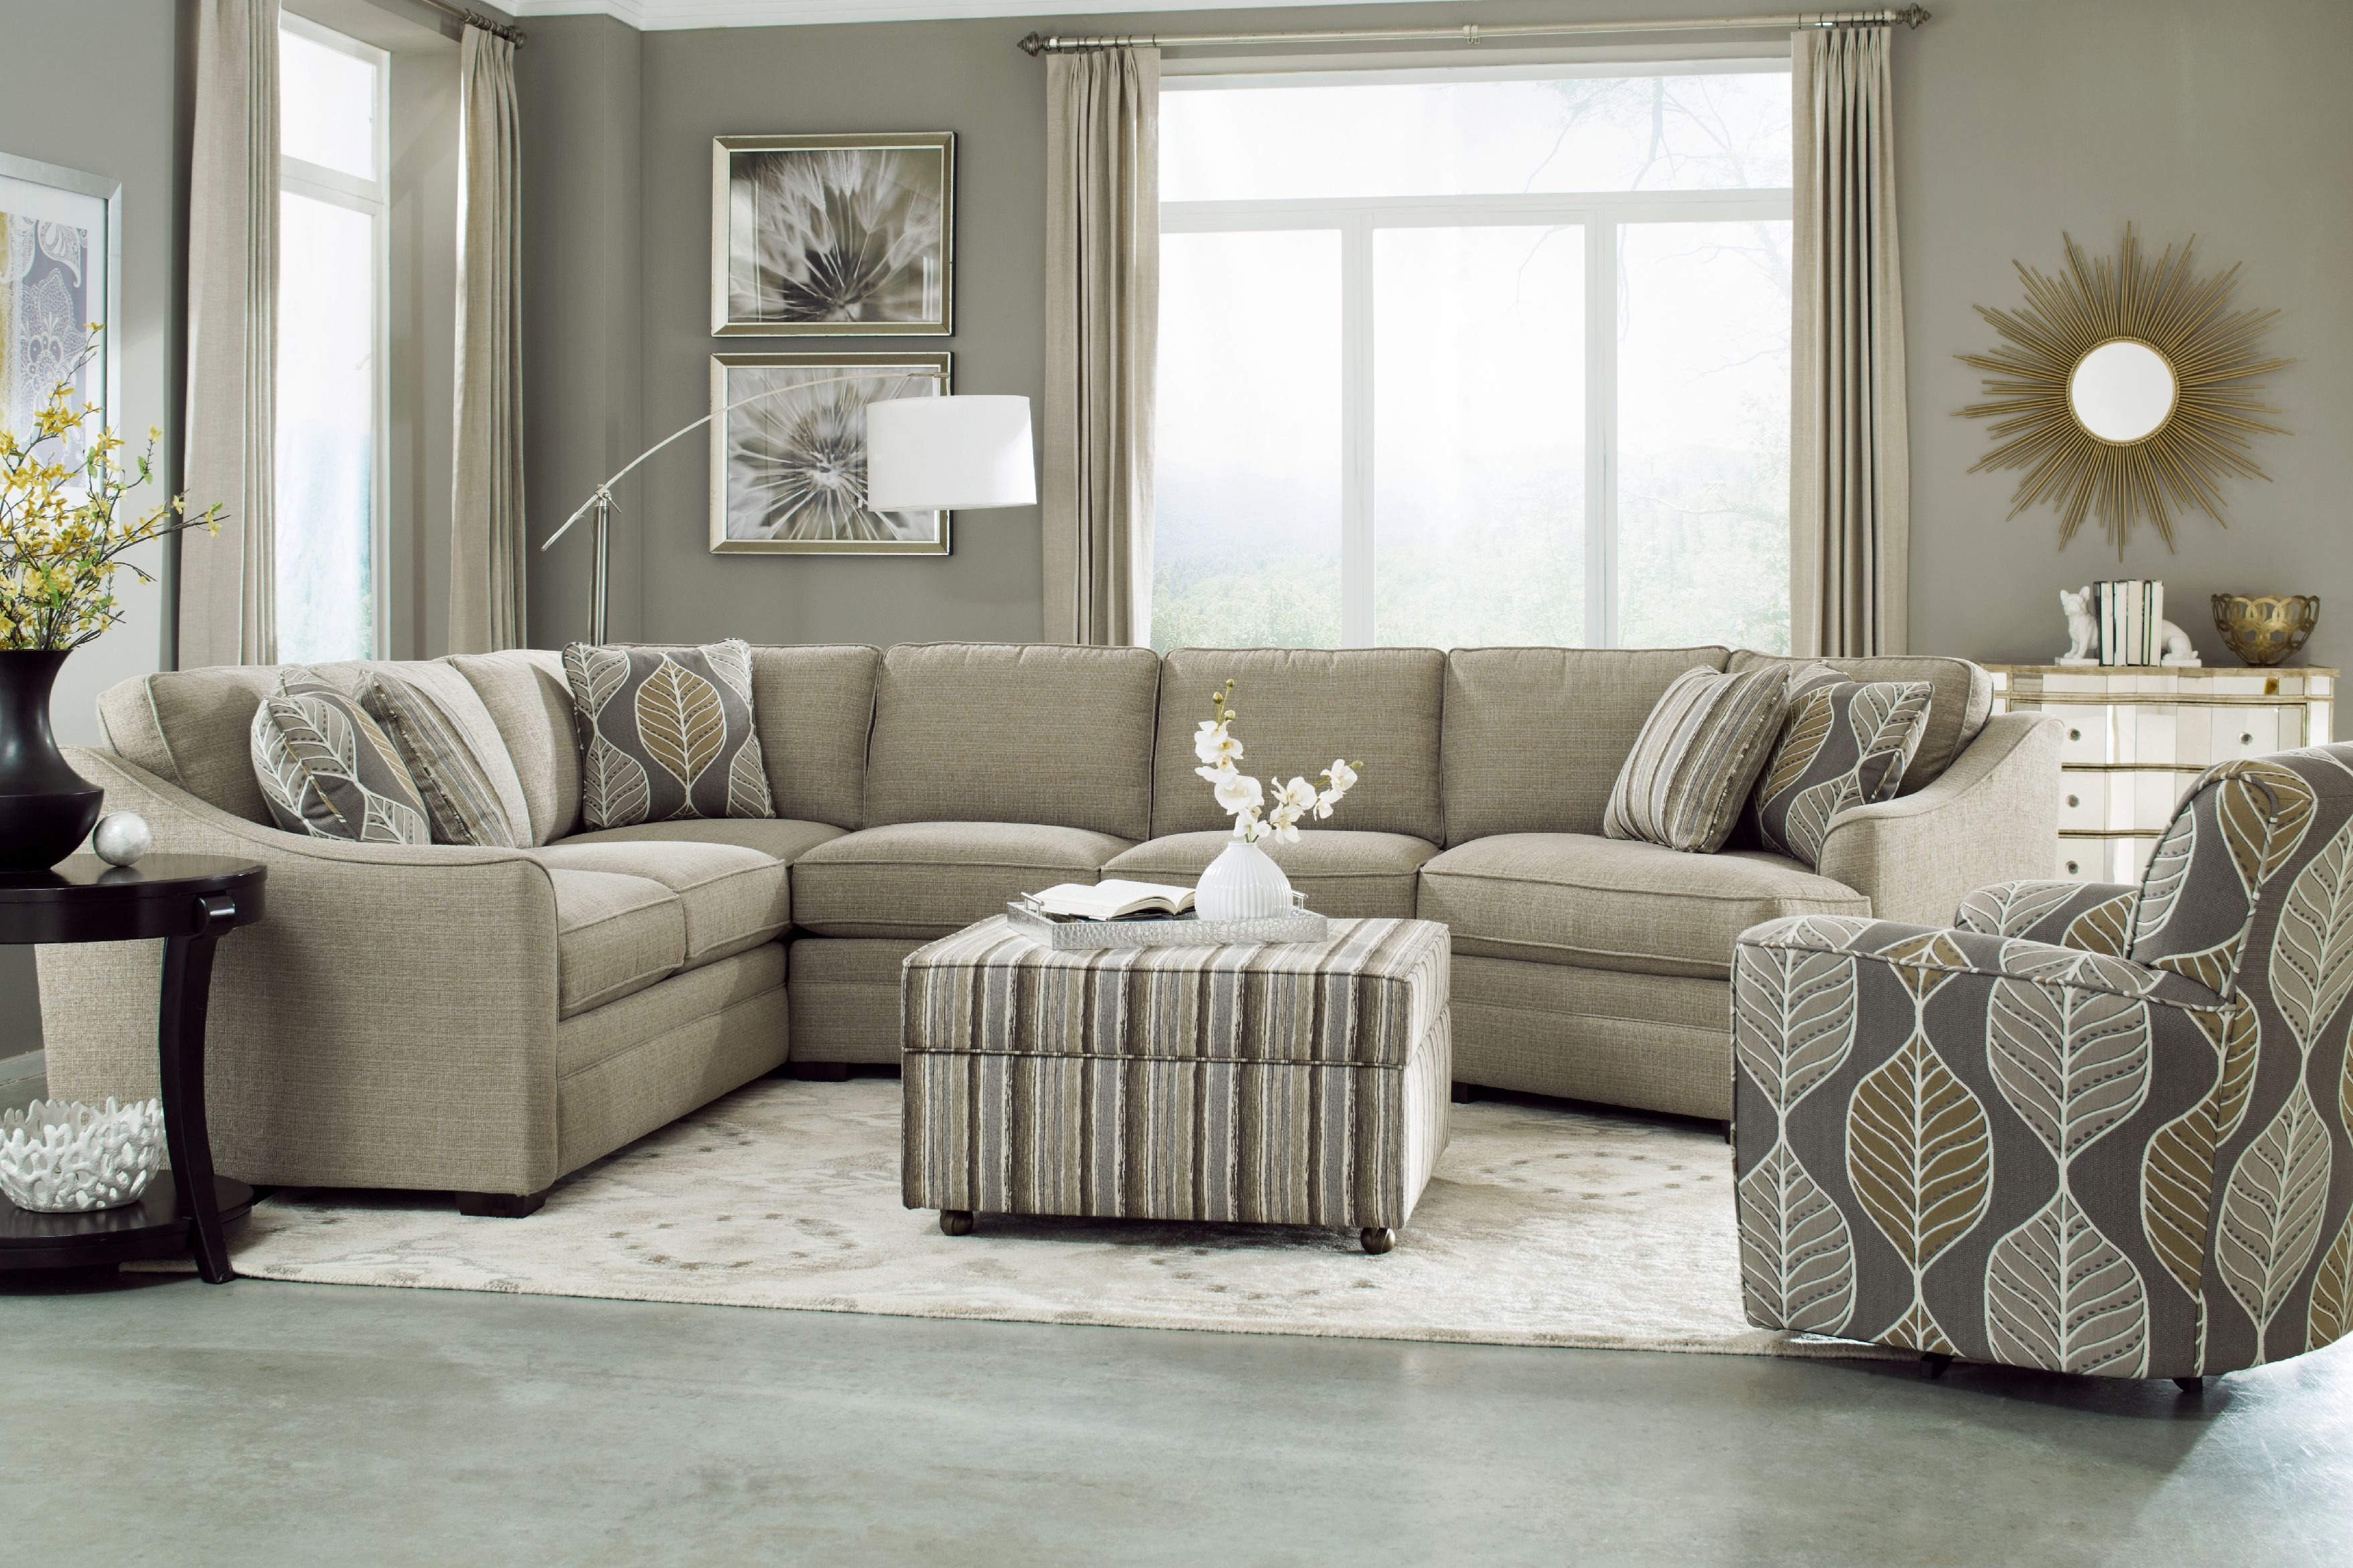 furniture room urgent livings comfortable www living home for decor